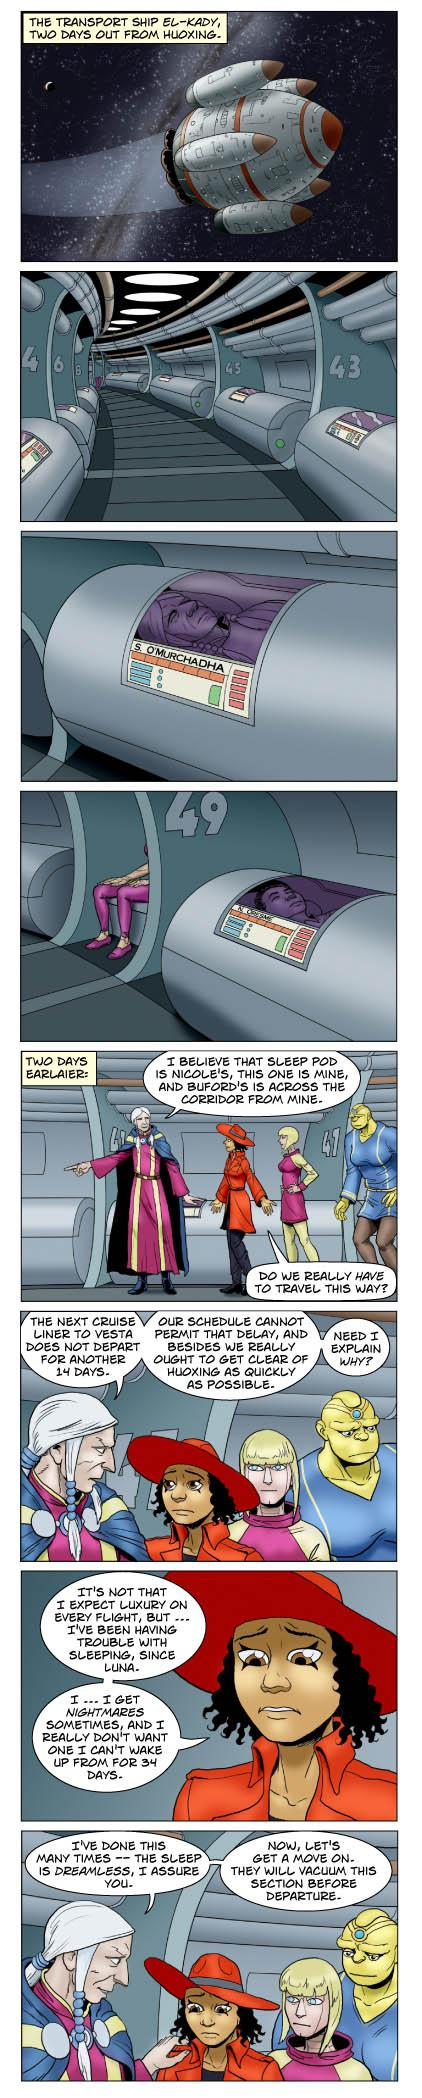 Strip 551 of Quantum Vibe